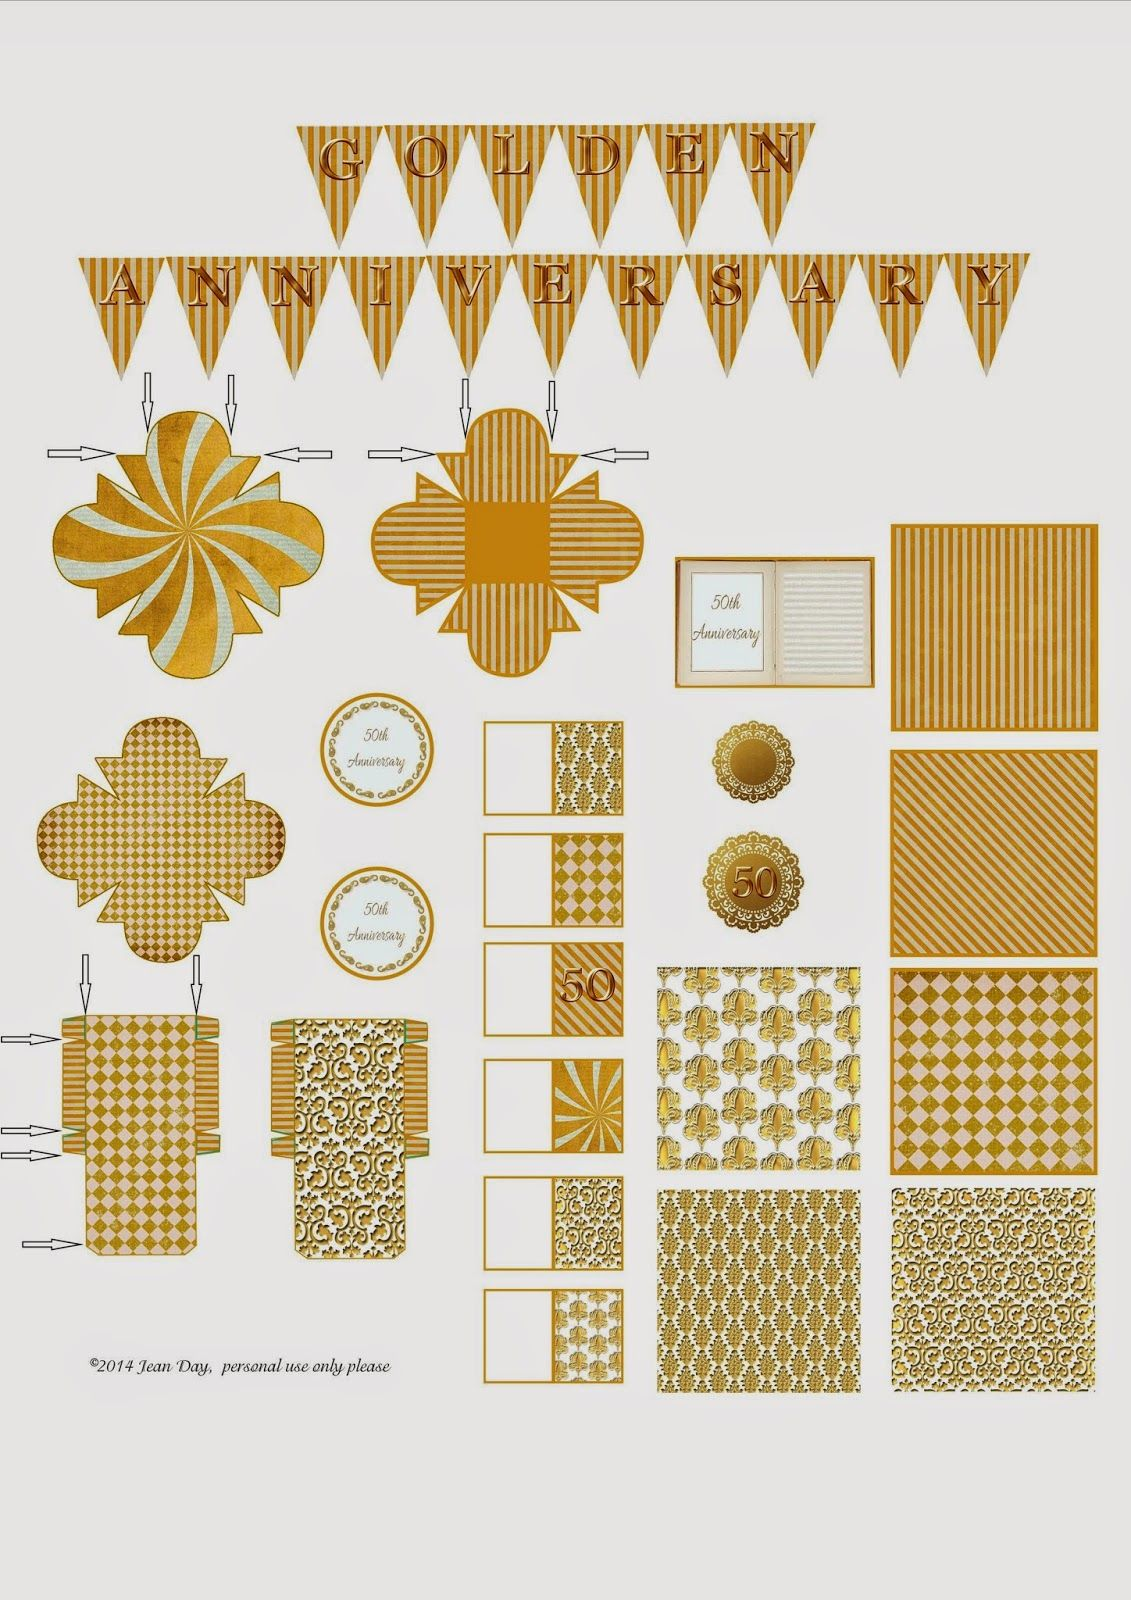 JDayMinis, Life, Antique Inspiration, Freebies: Free Printables from the Golden Anniversary issue 50 AIM Magazine